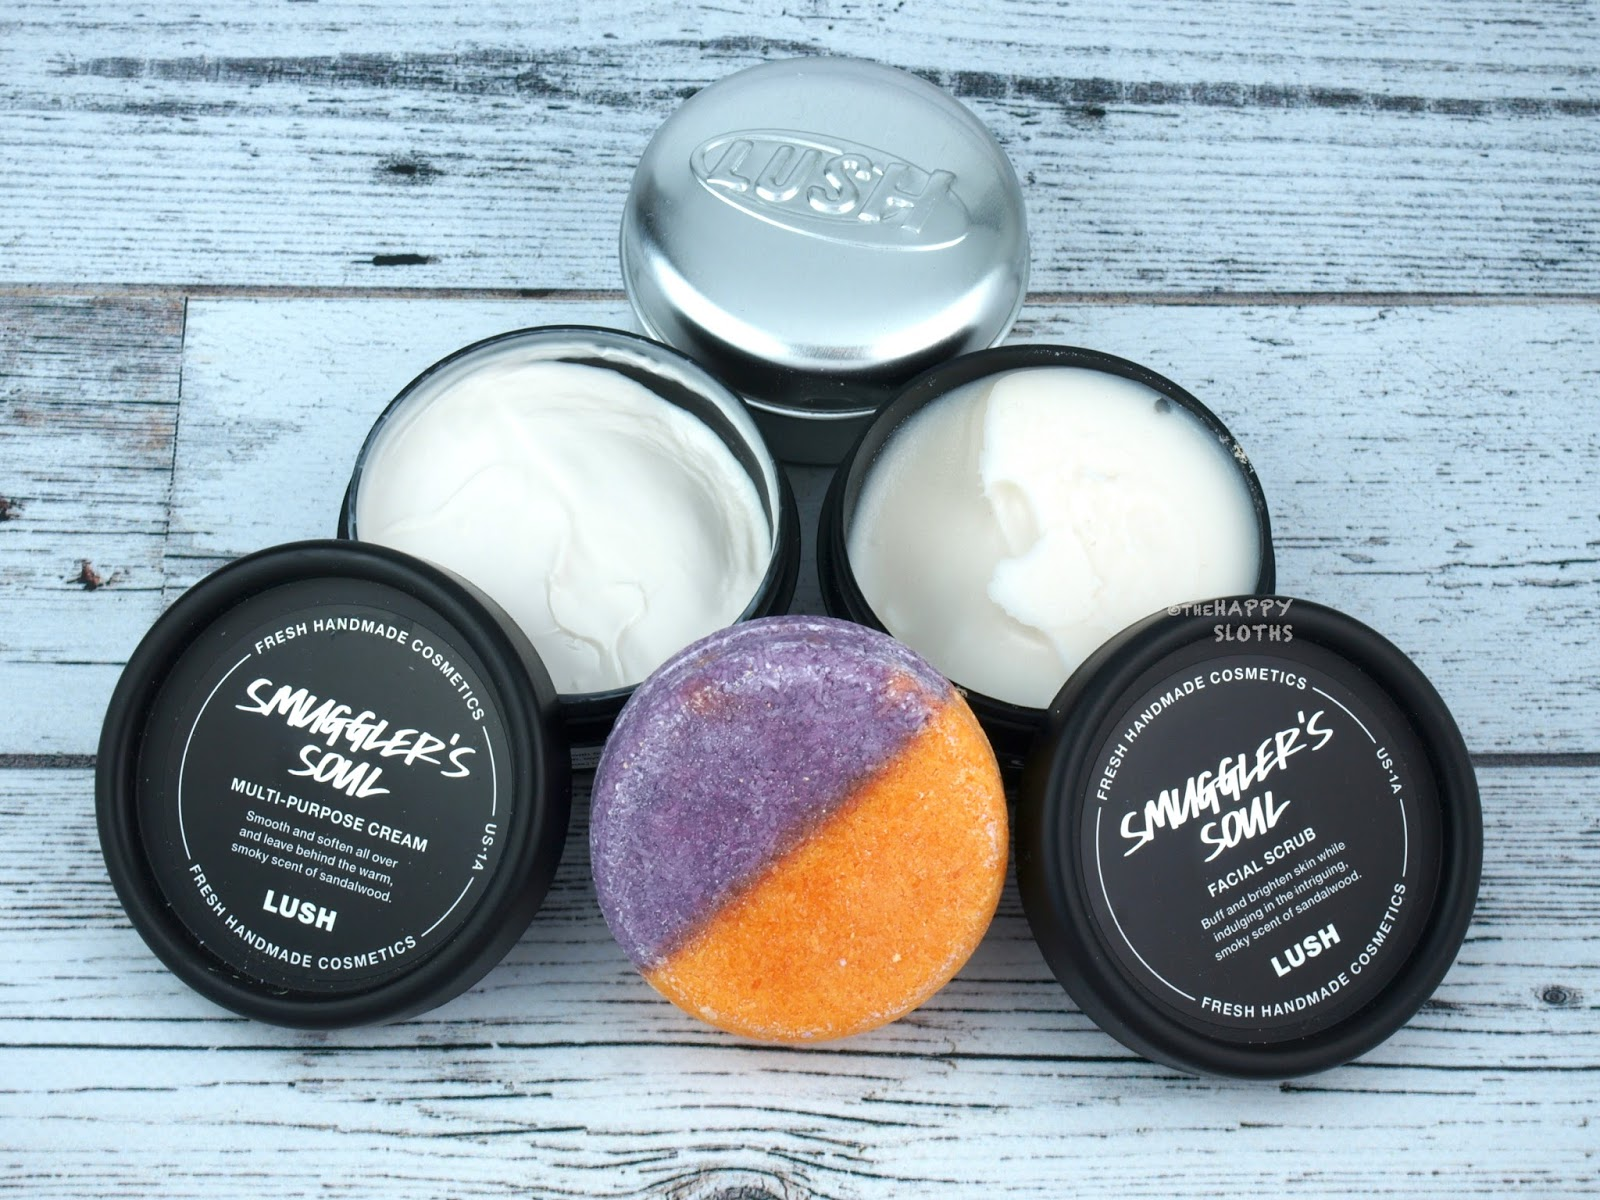 Lush Father's Day 2017 | Smuggler's Soul Multi-Purpose Cream, Facial Scrub & Shampoo Bar